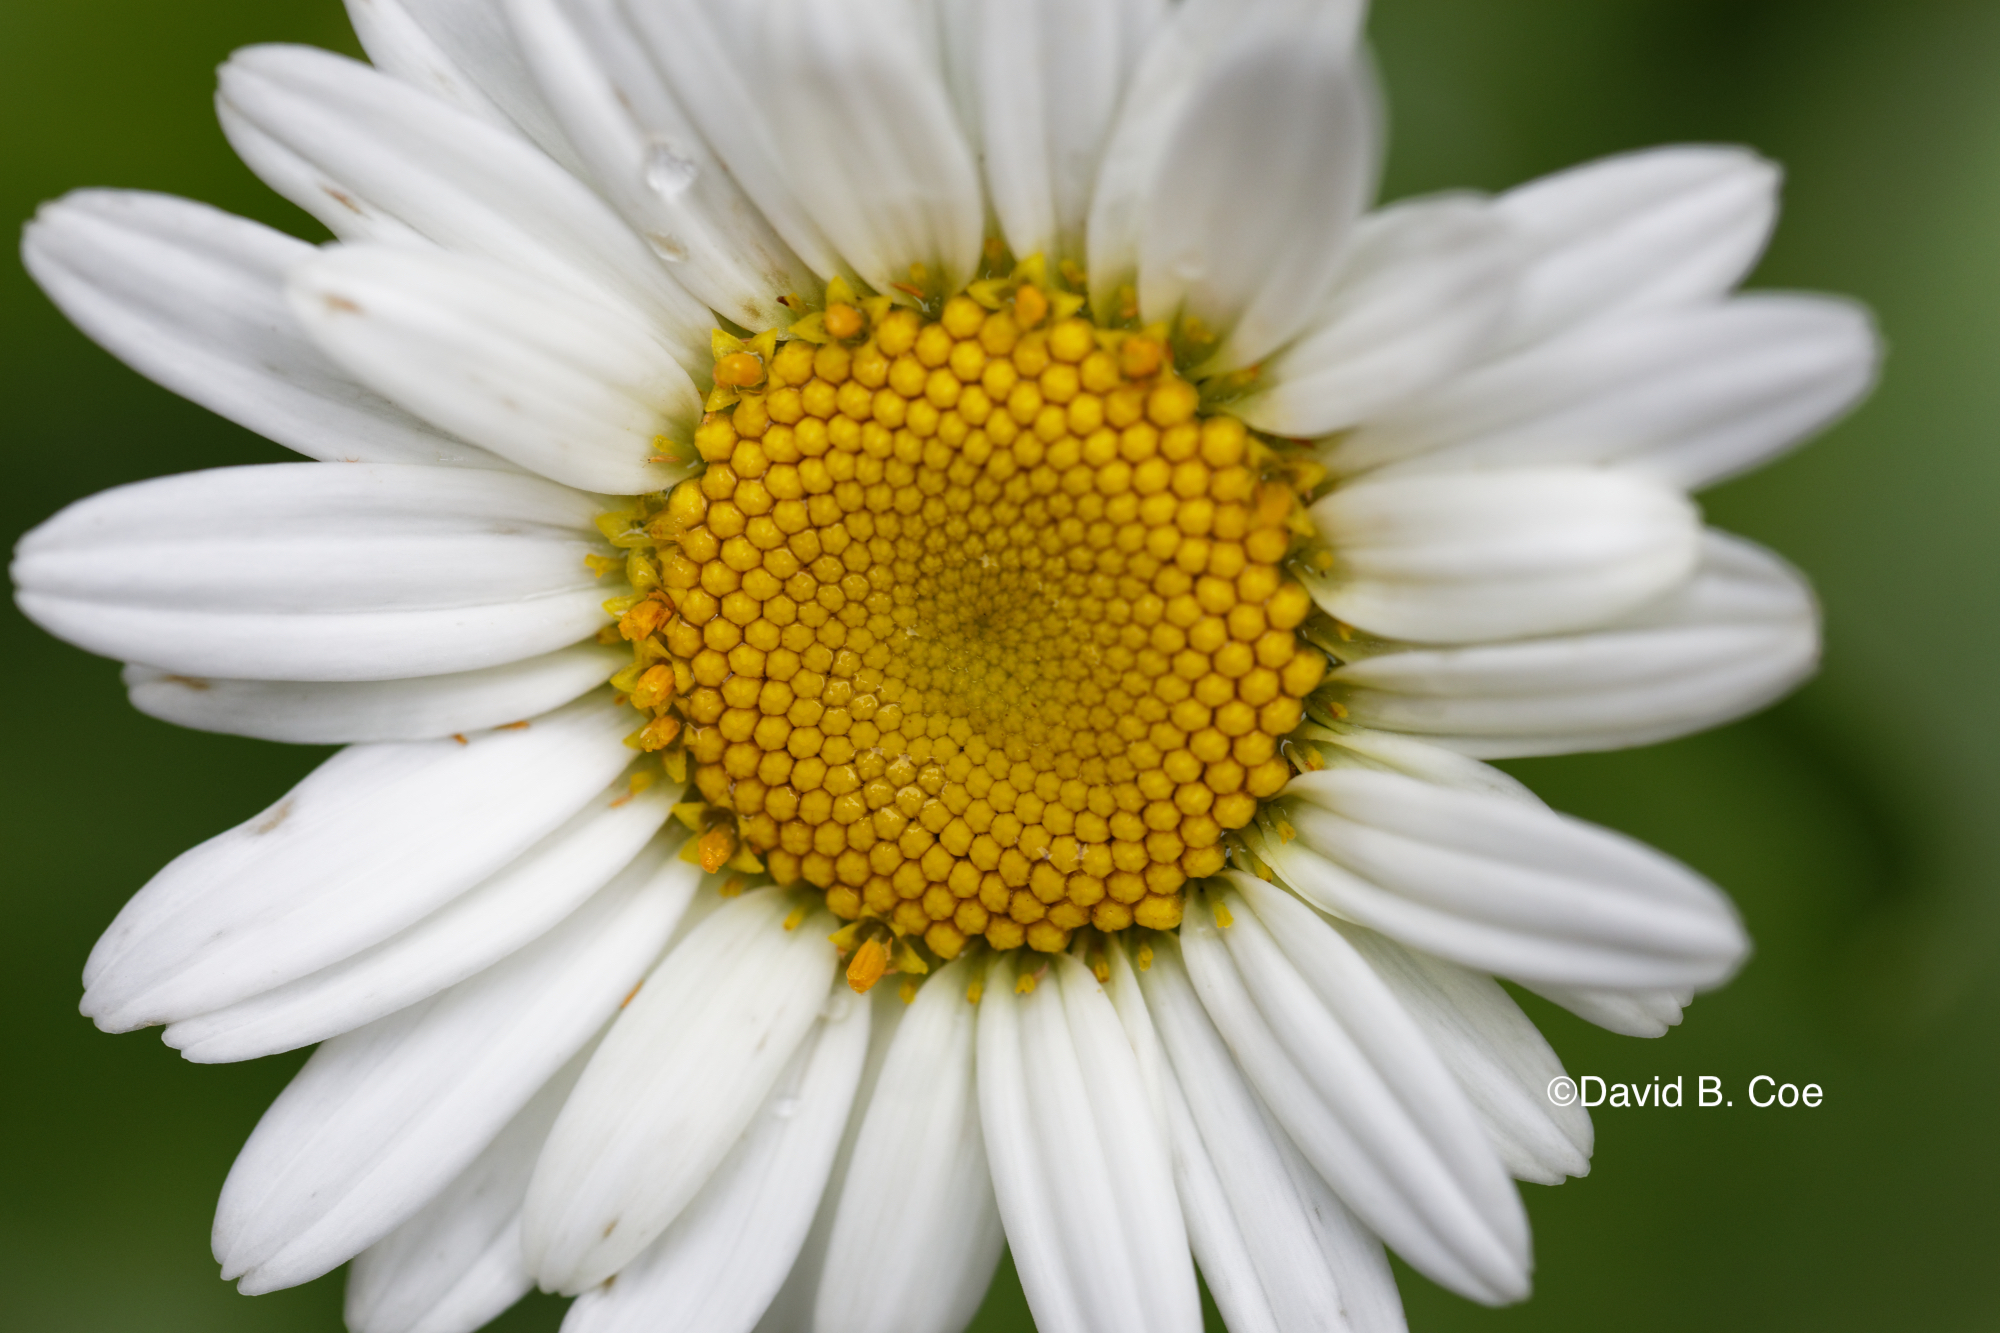 Daisy After Rain, by David B. Coe